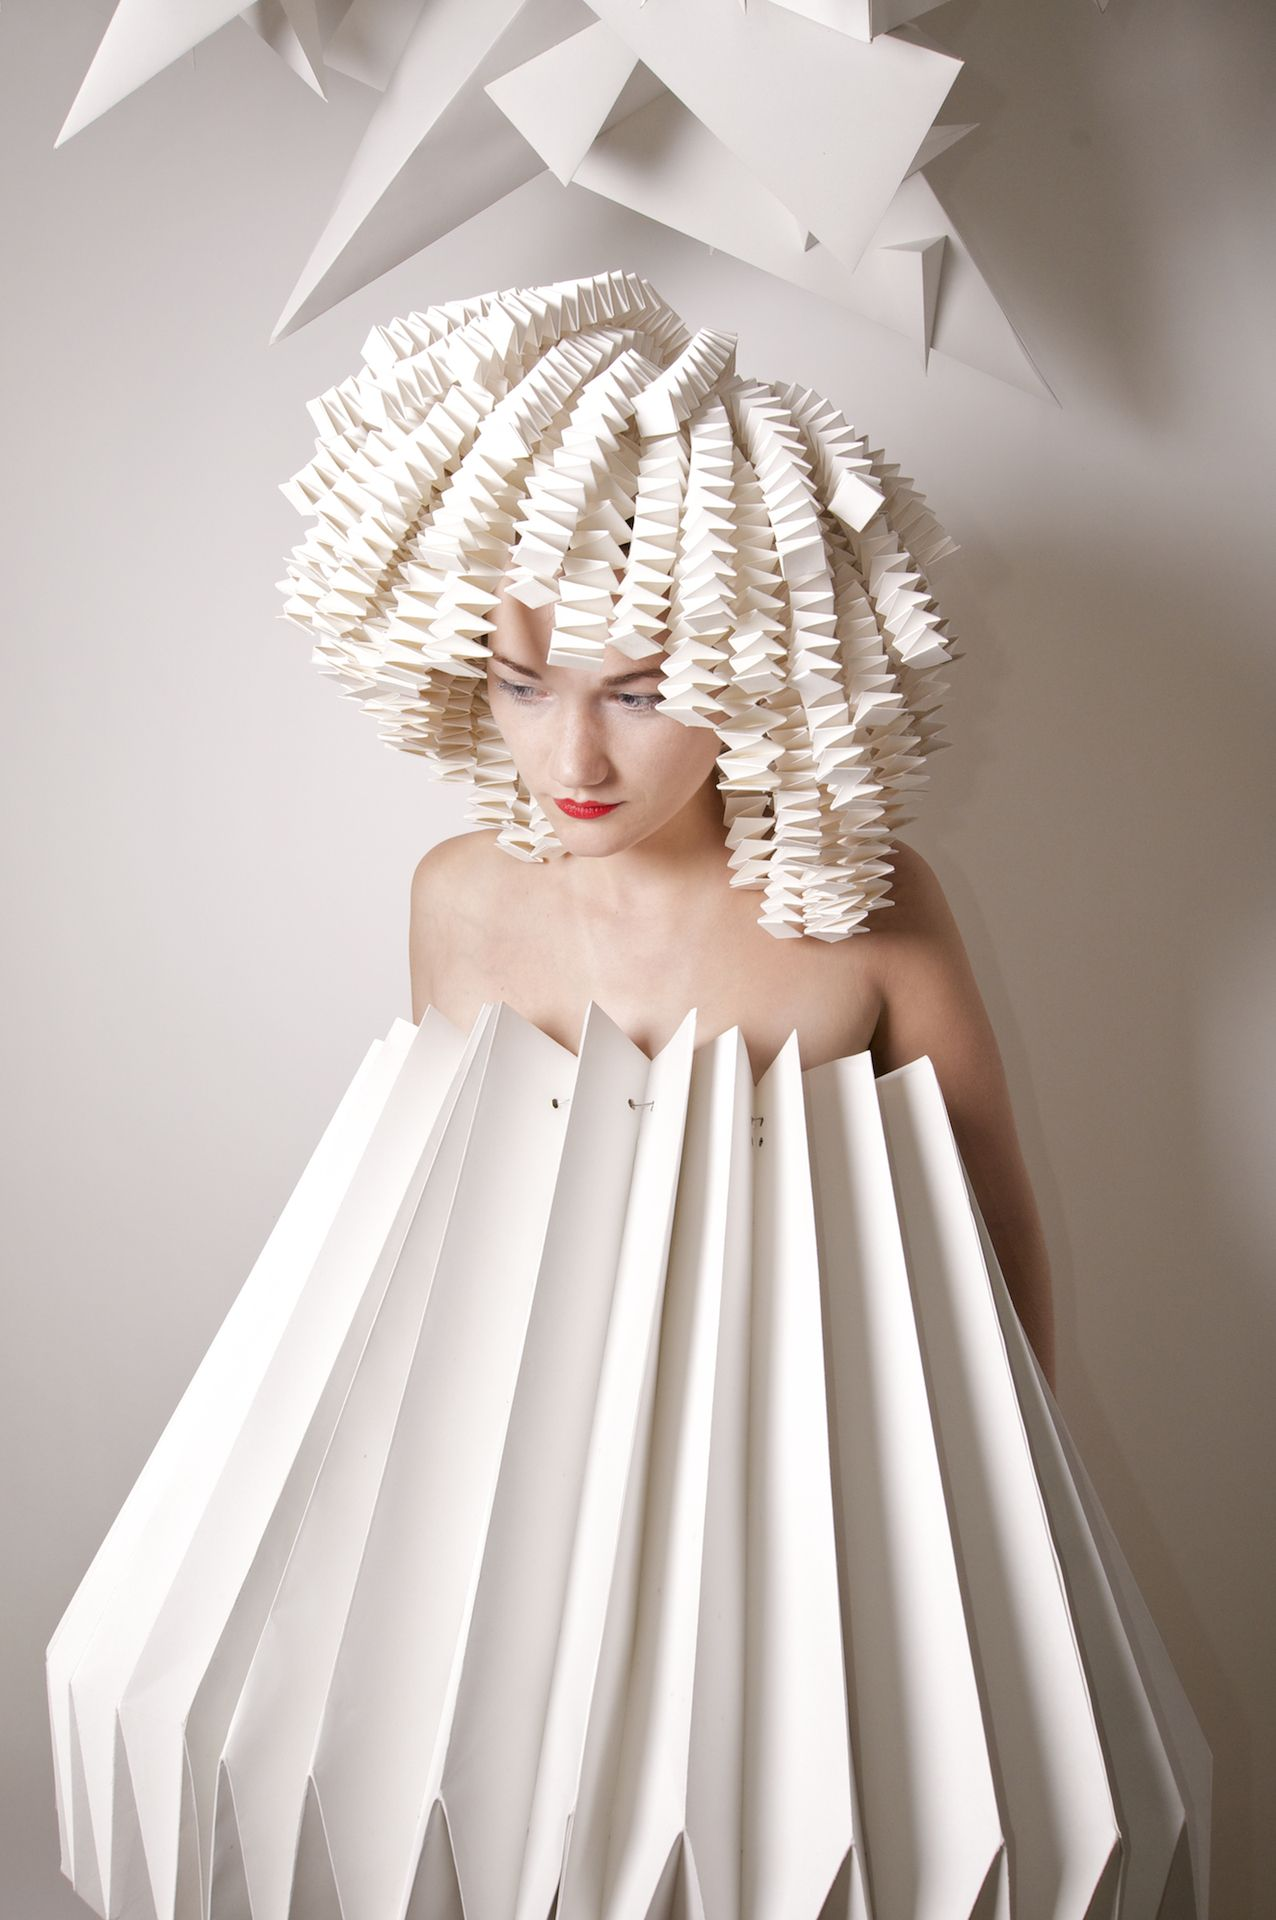 878cbc567c7c DO HAIR FOR IYC ℘ Paper Dress Prettiness ℘ art dress made of paper ...